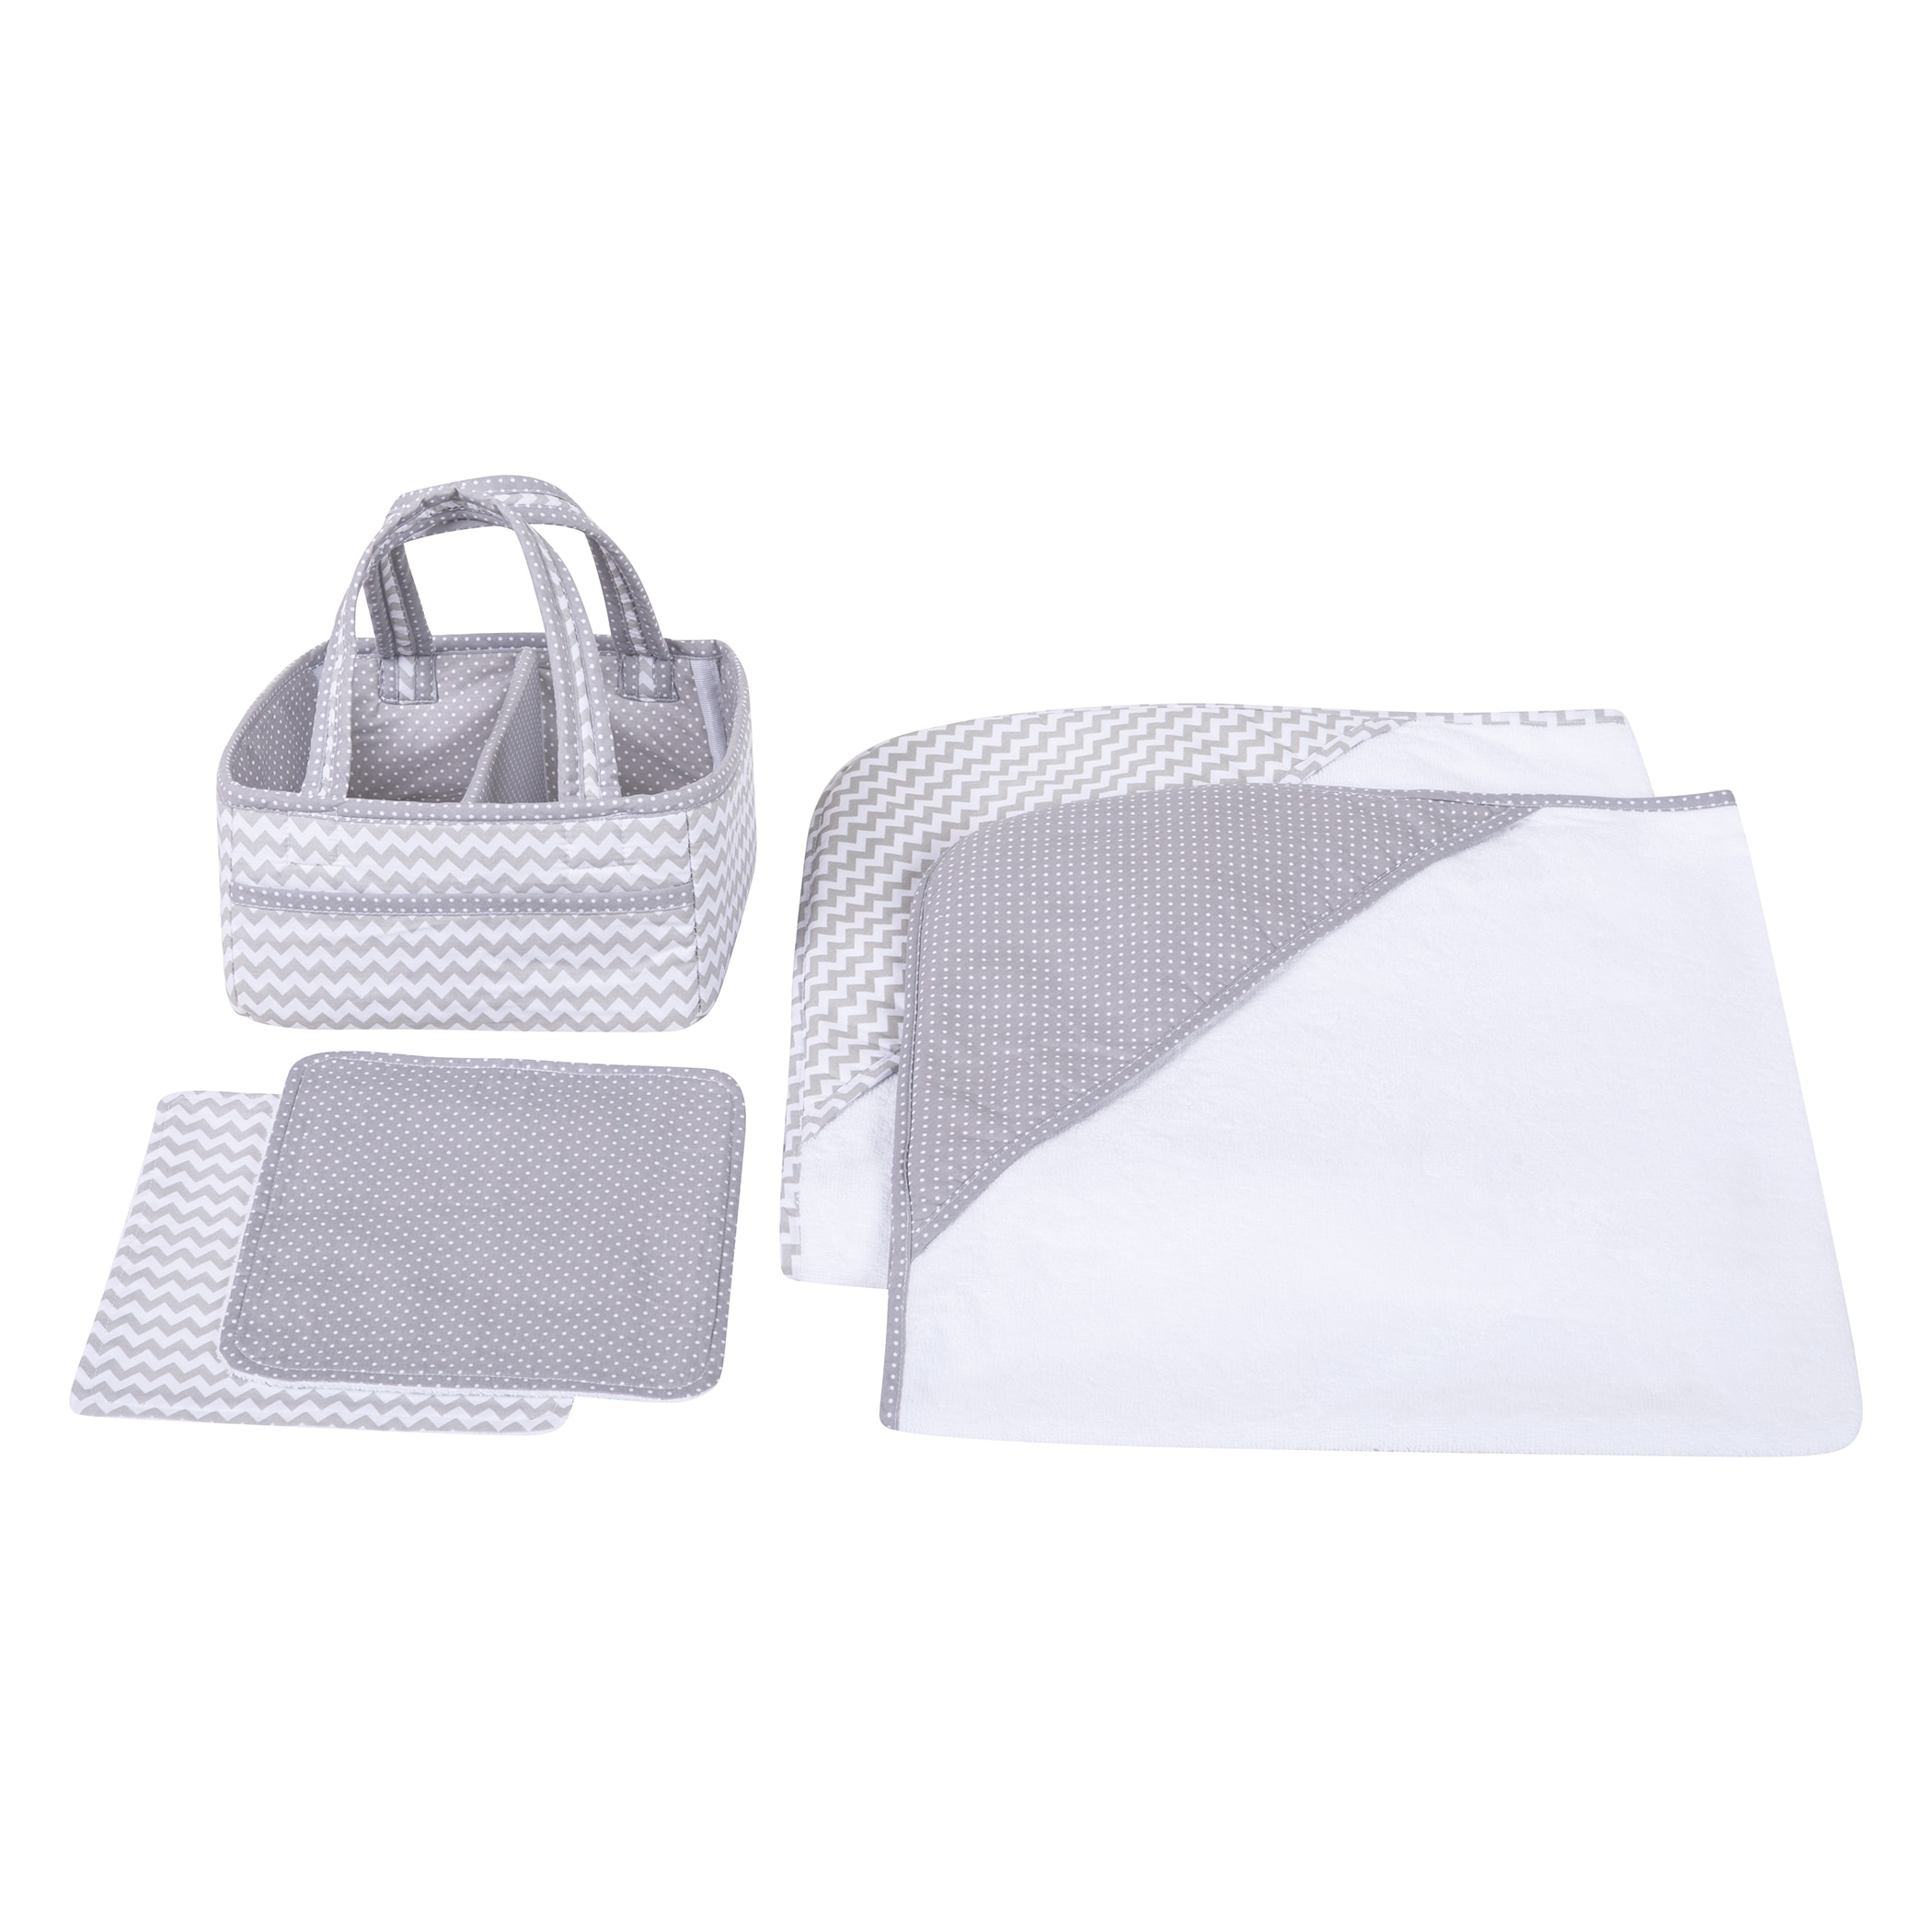 Gray Chevron 5 Piece Baby Bath Gift Set by Trend Lab